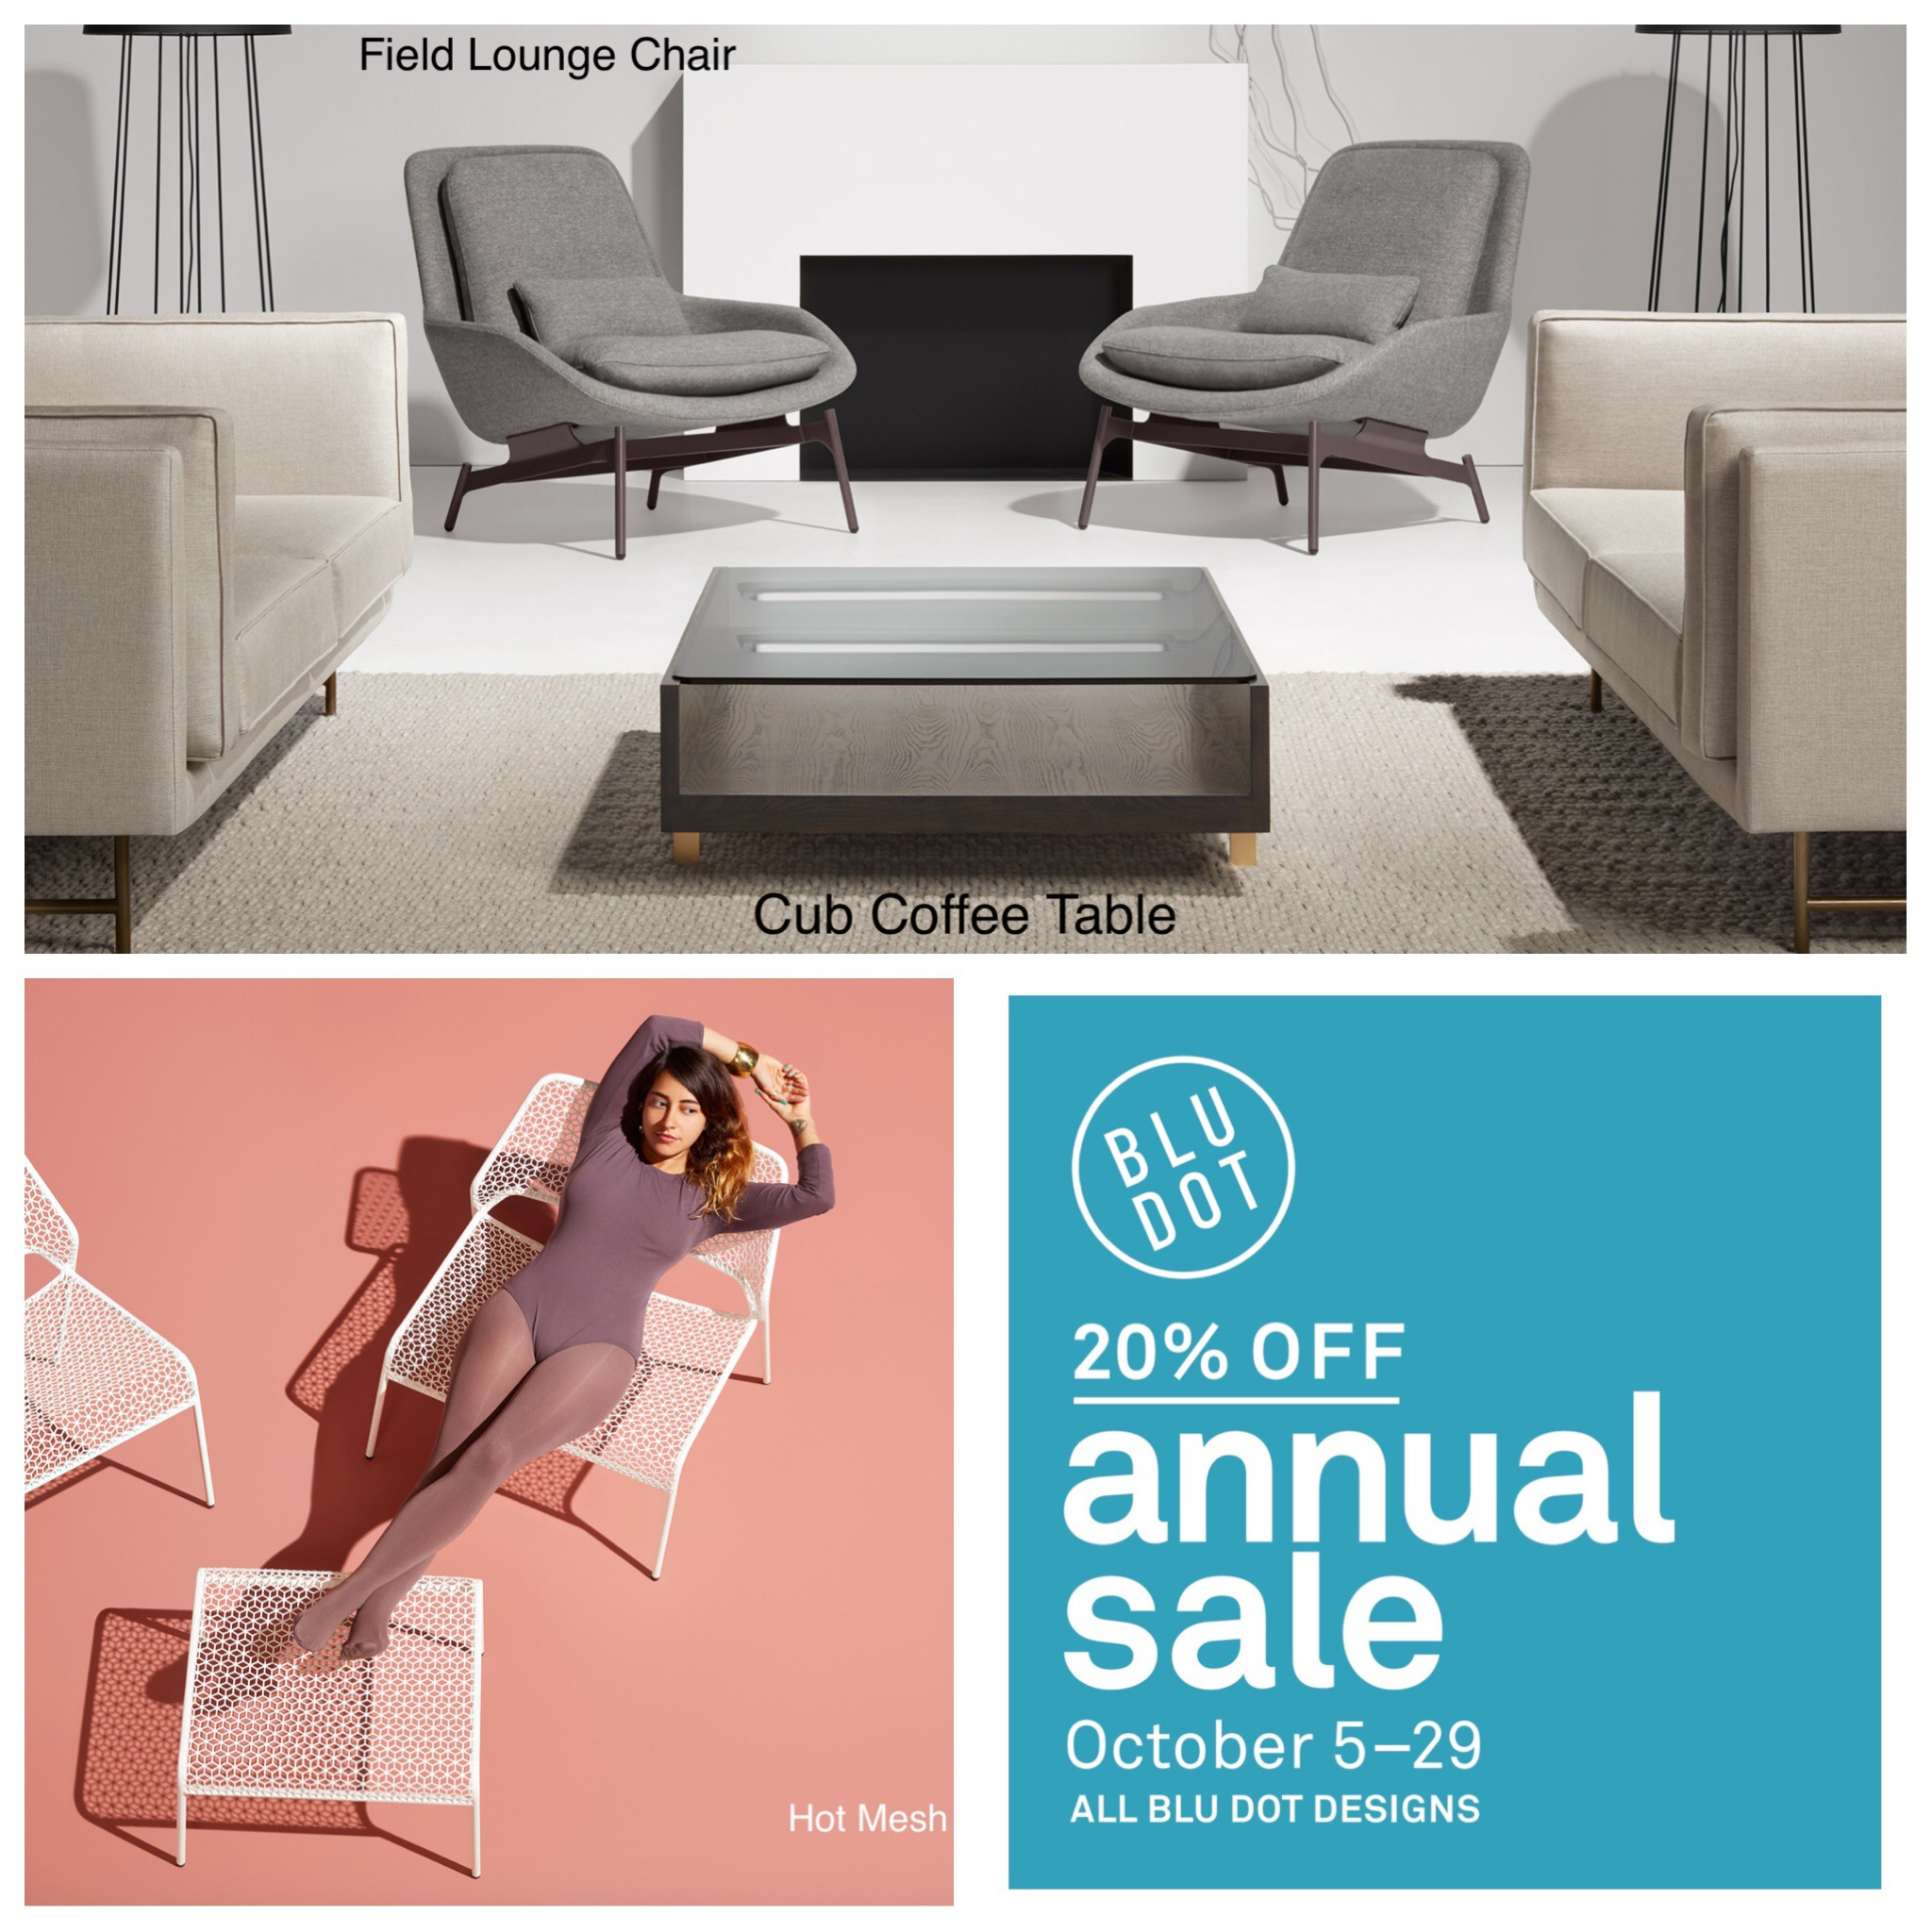 Mod living furniture 60s you Know Blu Dot You Know Mod Livin Whats Holding You Back This Sale Only Comes Once Year Get In Here And Get Shopping The Holidays Are Coming Mod Livin Annual Blu Dot 20 Off Sale Mod Livin Mod Livin Modern Furniture